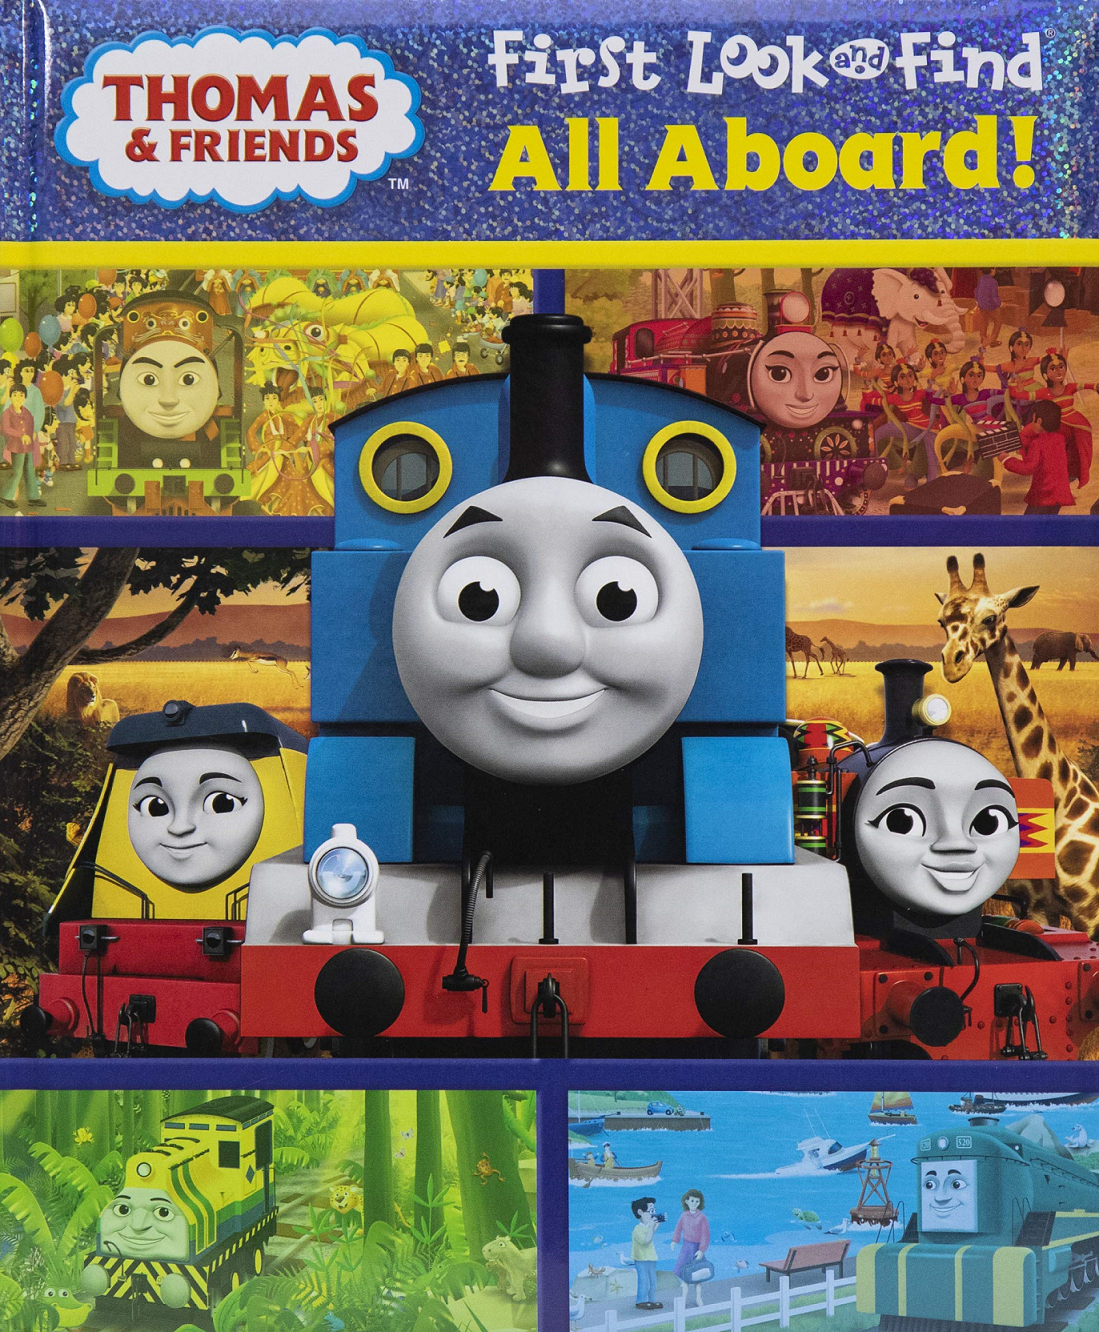 All Aboard! (First Look and Find book)